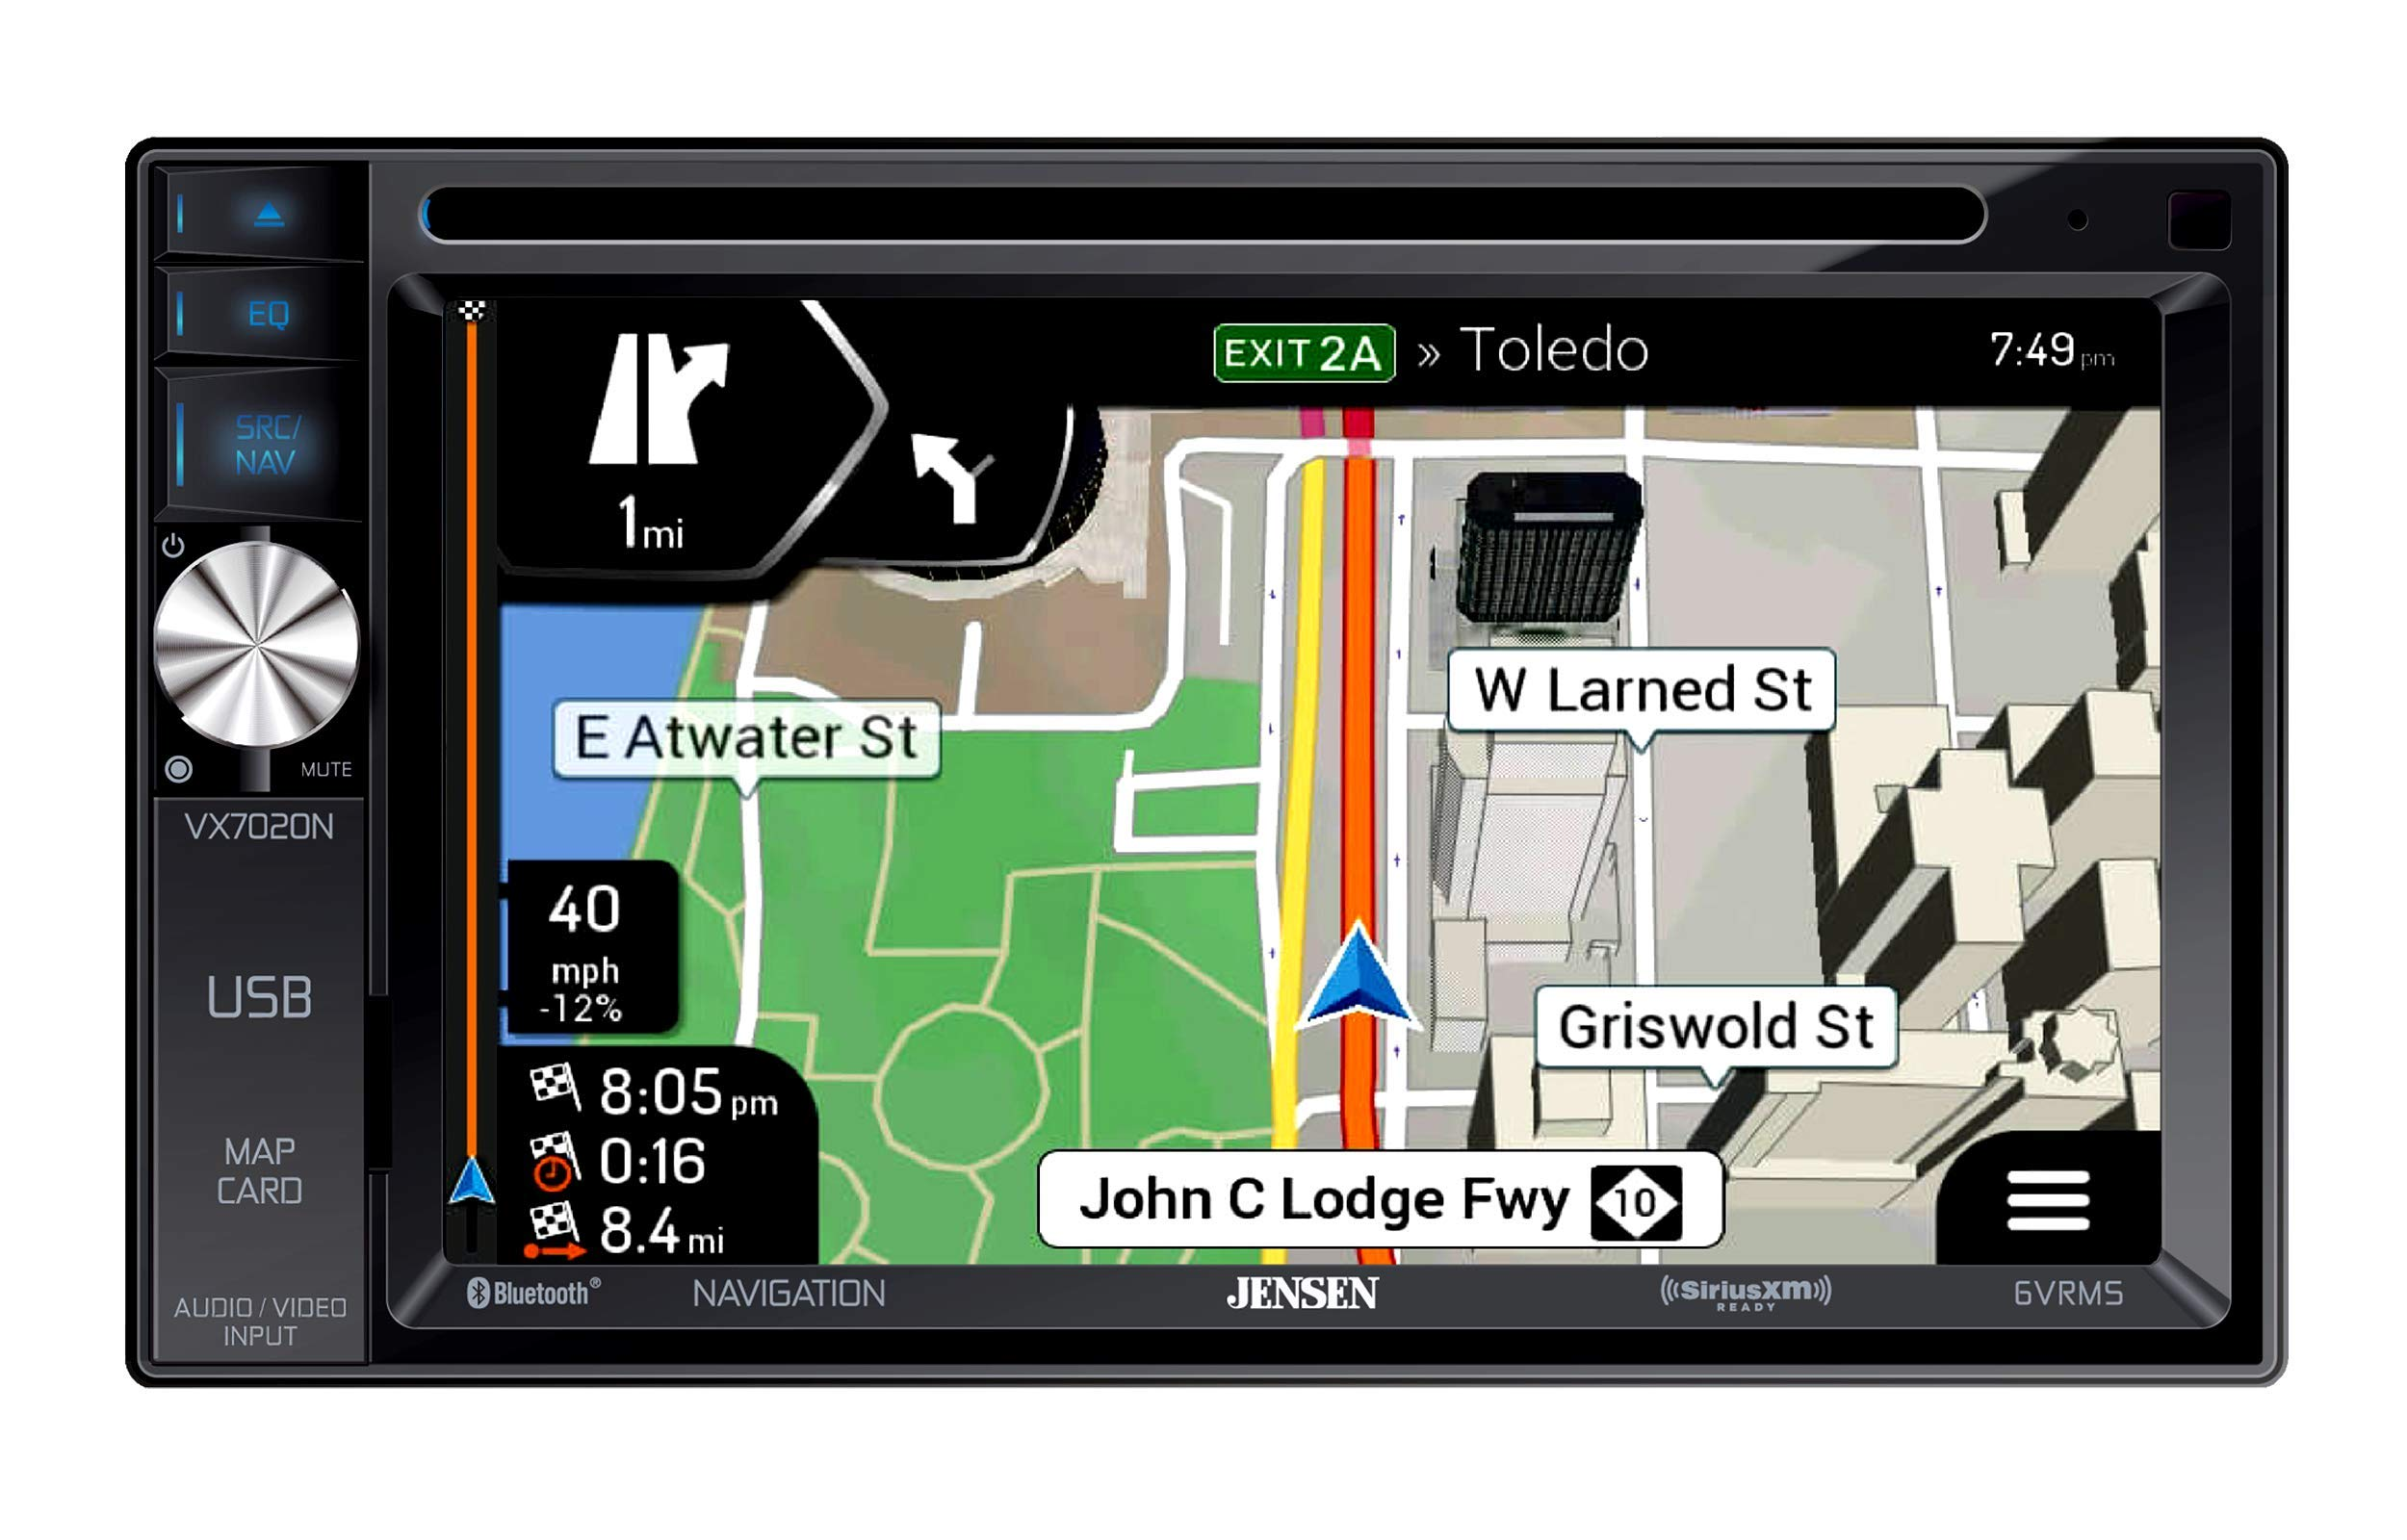 Jensen VX7020N 6.2-inch LED Backlit LCD Multimedia Touch Screen Double DIN Car Stereo with Built-In Navigation, Bluetooth, CD/DVD Player & SiriusXM-Ready